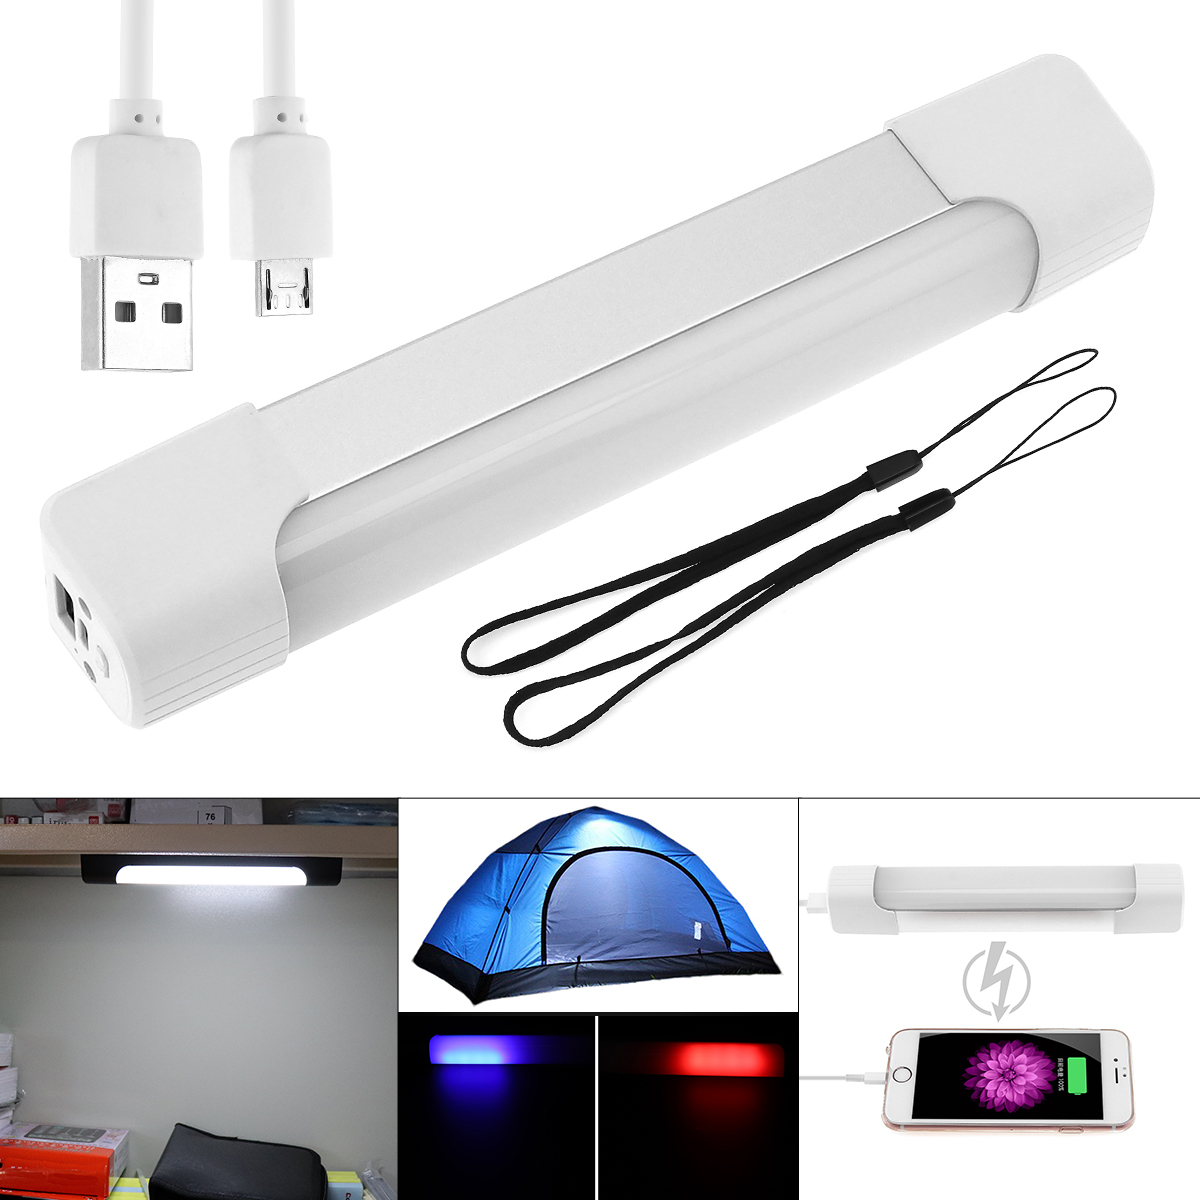 Rechargeable LED Light Tube Multifunctional & Magnet Lamp Bulb,Mini Portable Camping Lantern With 5 Modes For Home/ Outdoor